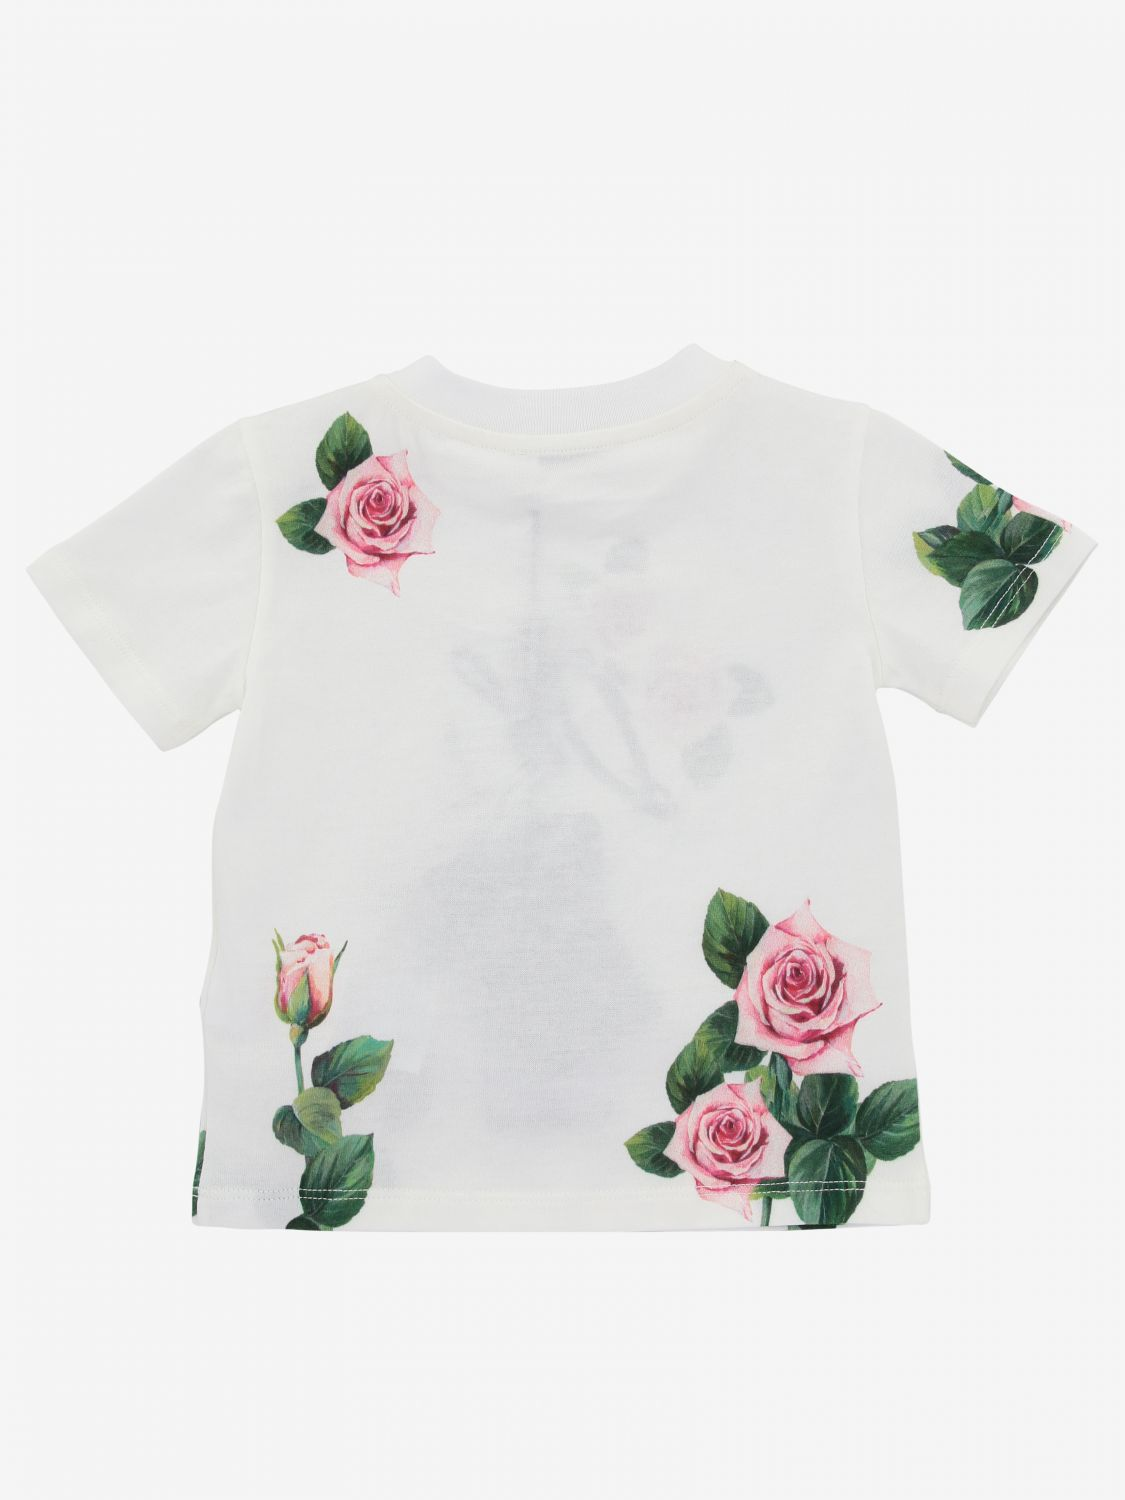 Dolce & Gabbana t-shirt with floral print yellow cream 2